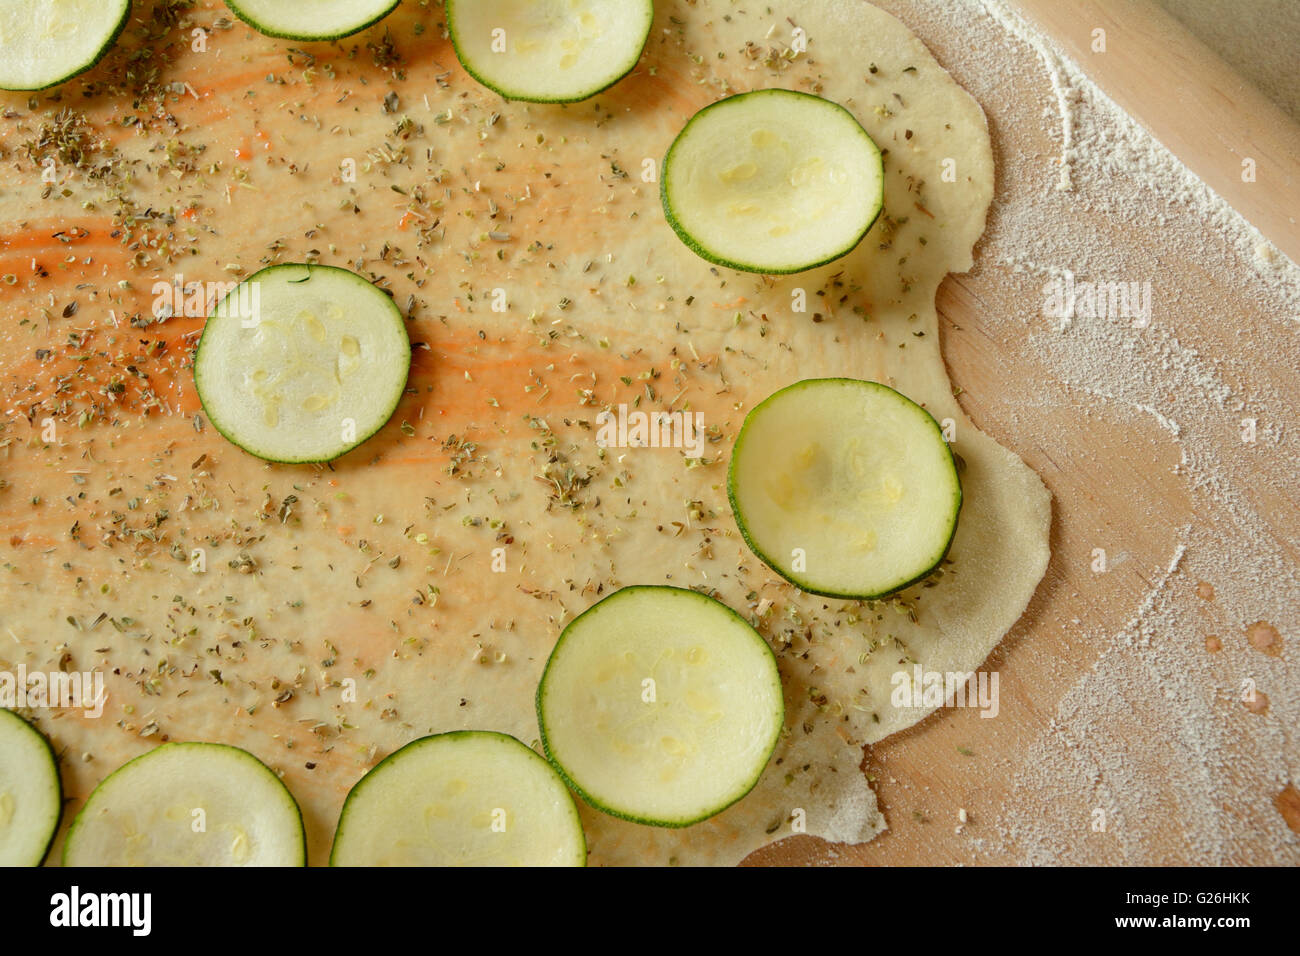 Home made raw pizza during preparation. - Stock Image